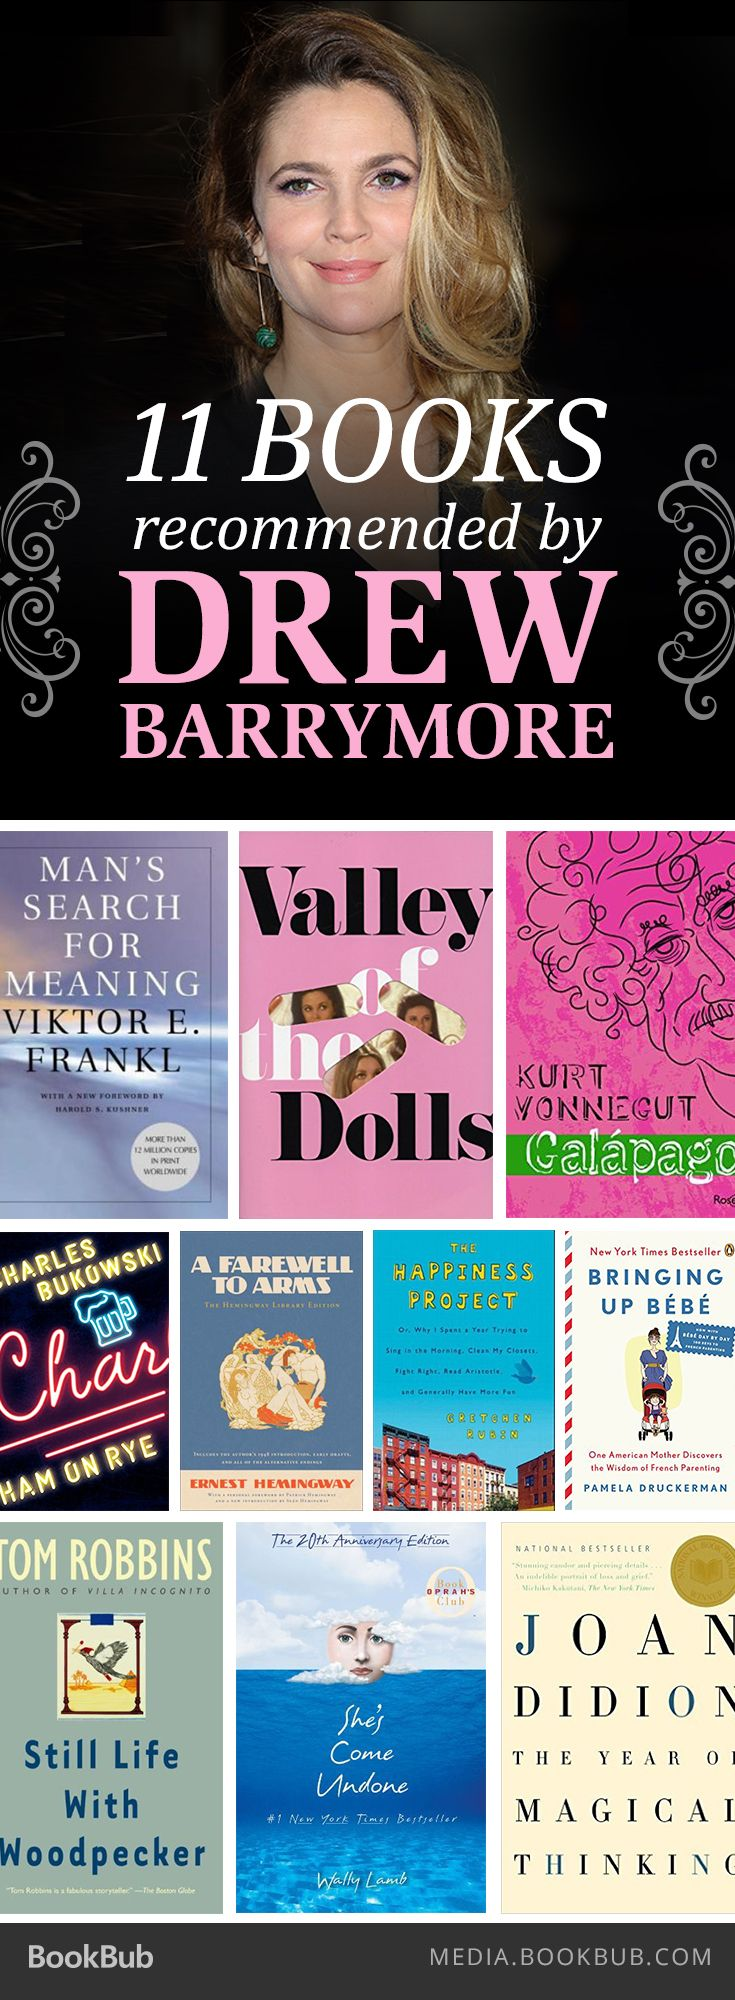 Drew Barrymore recommends this list of 11 fantastic books.